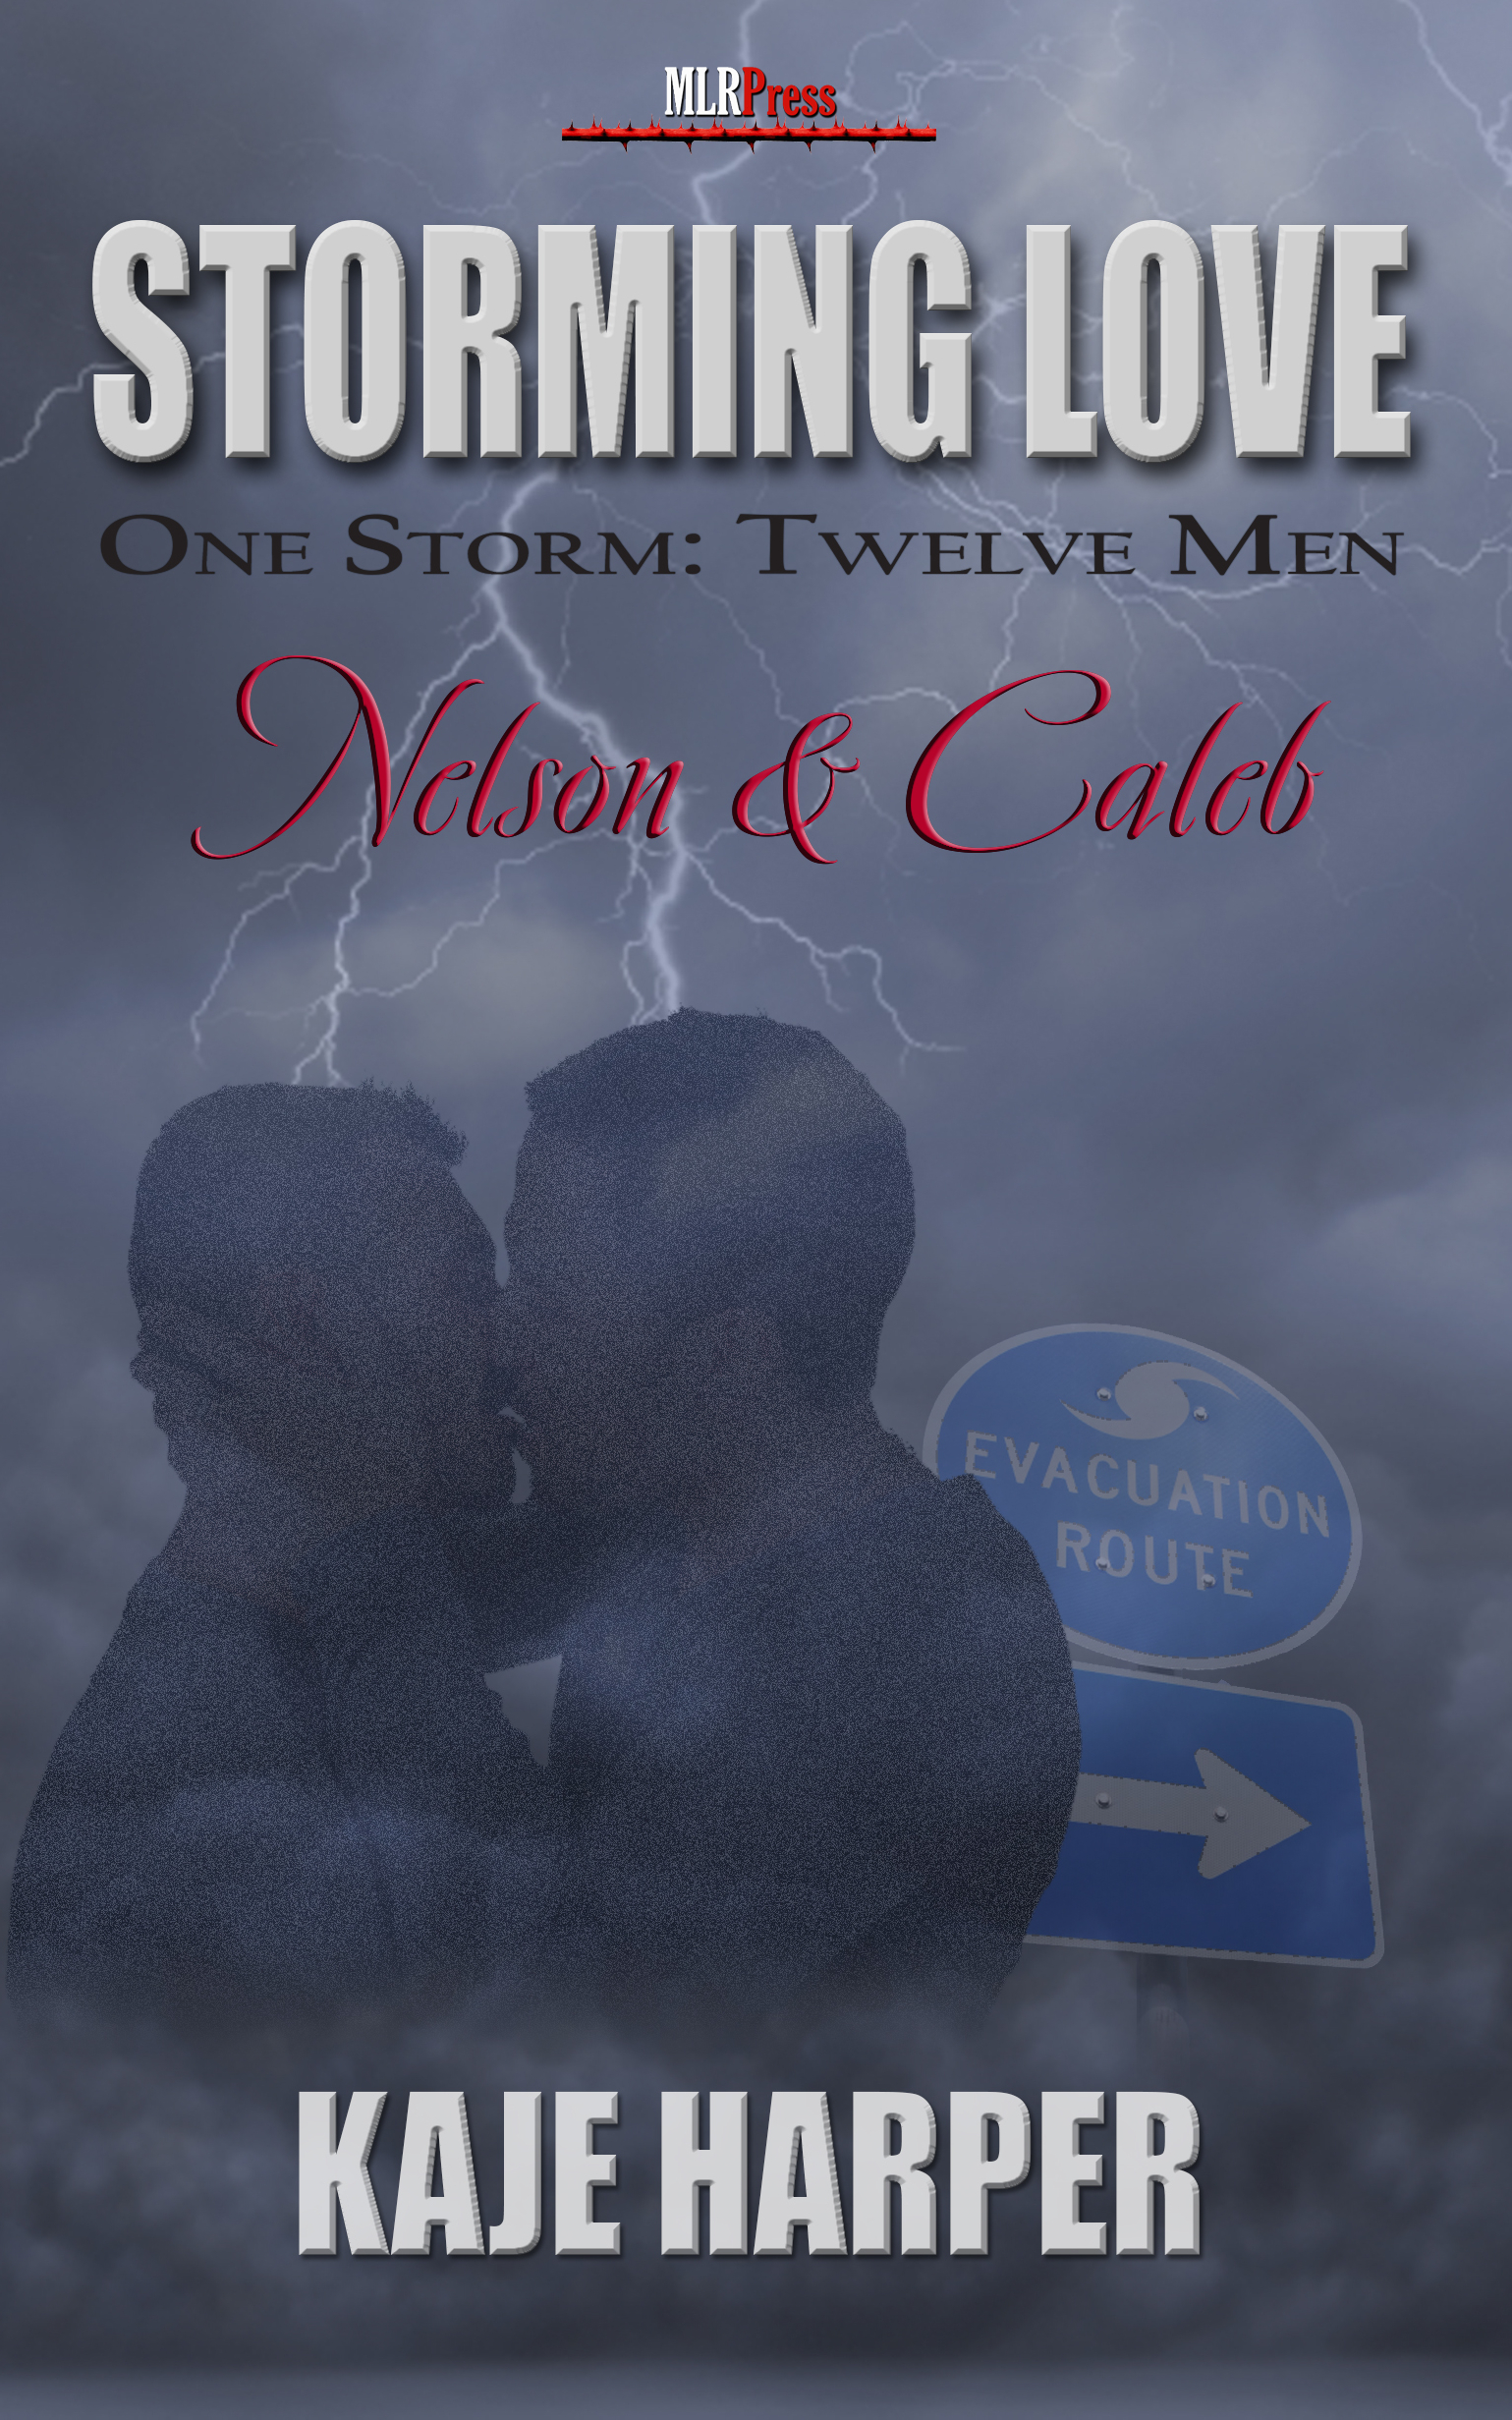 Nelson & Caleb cover